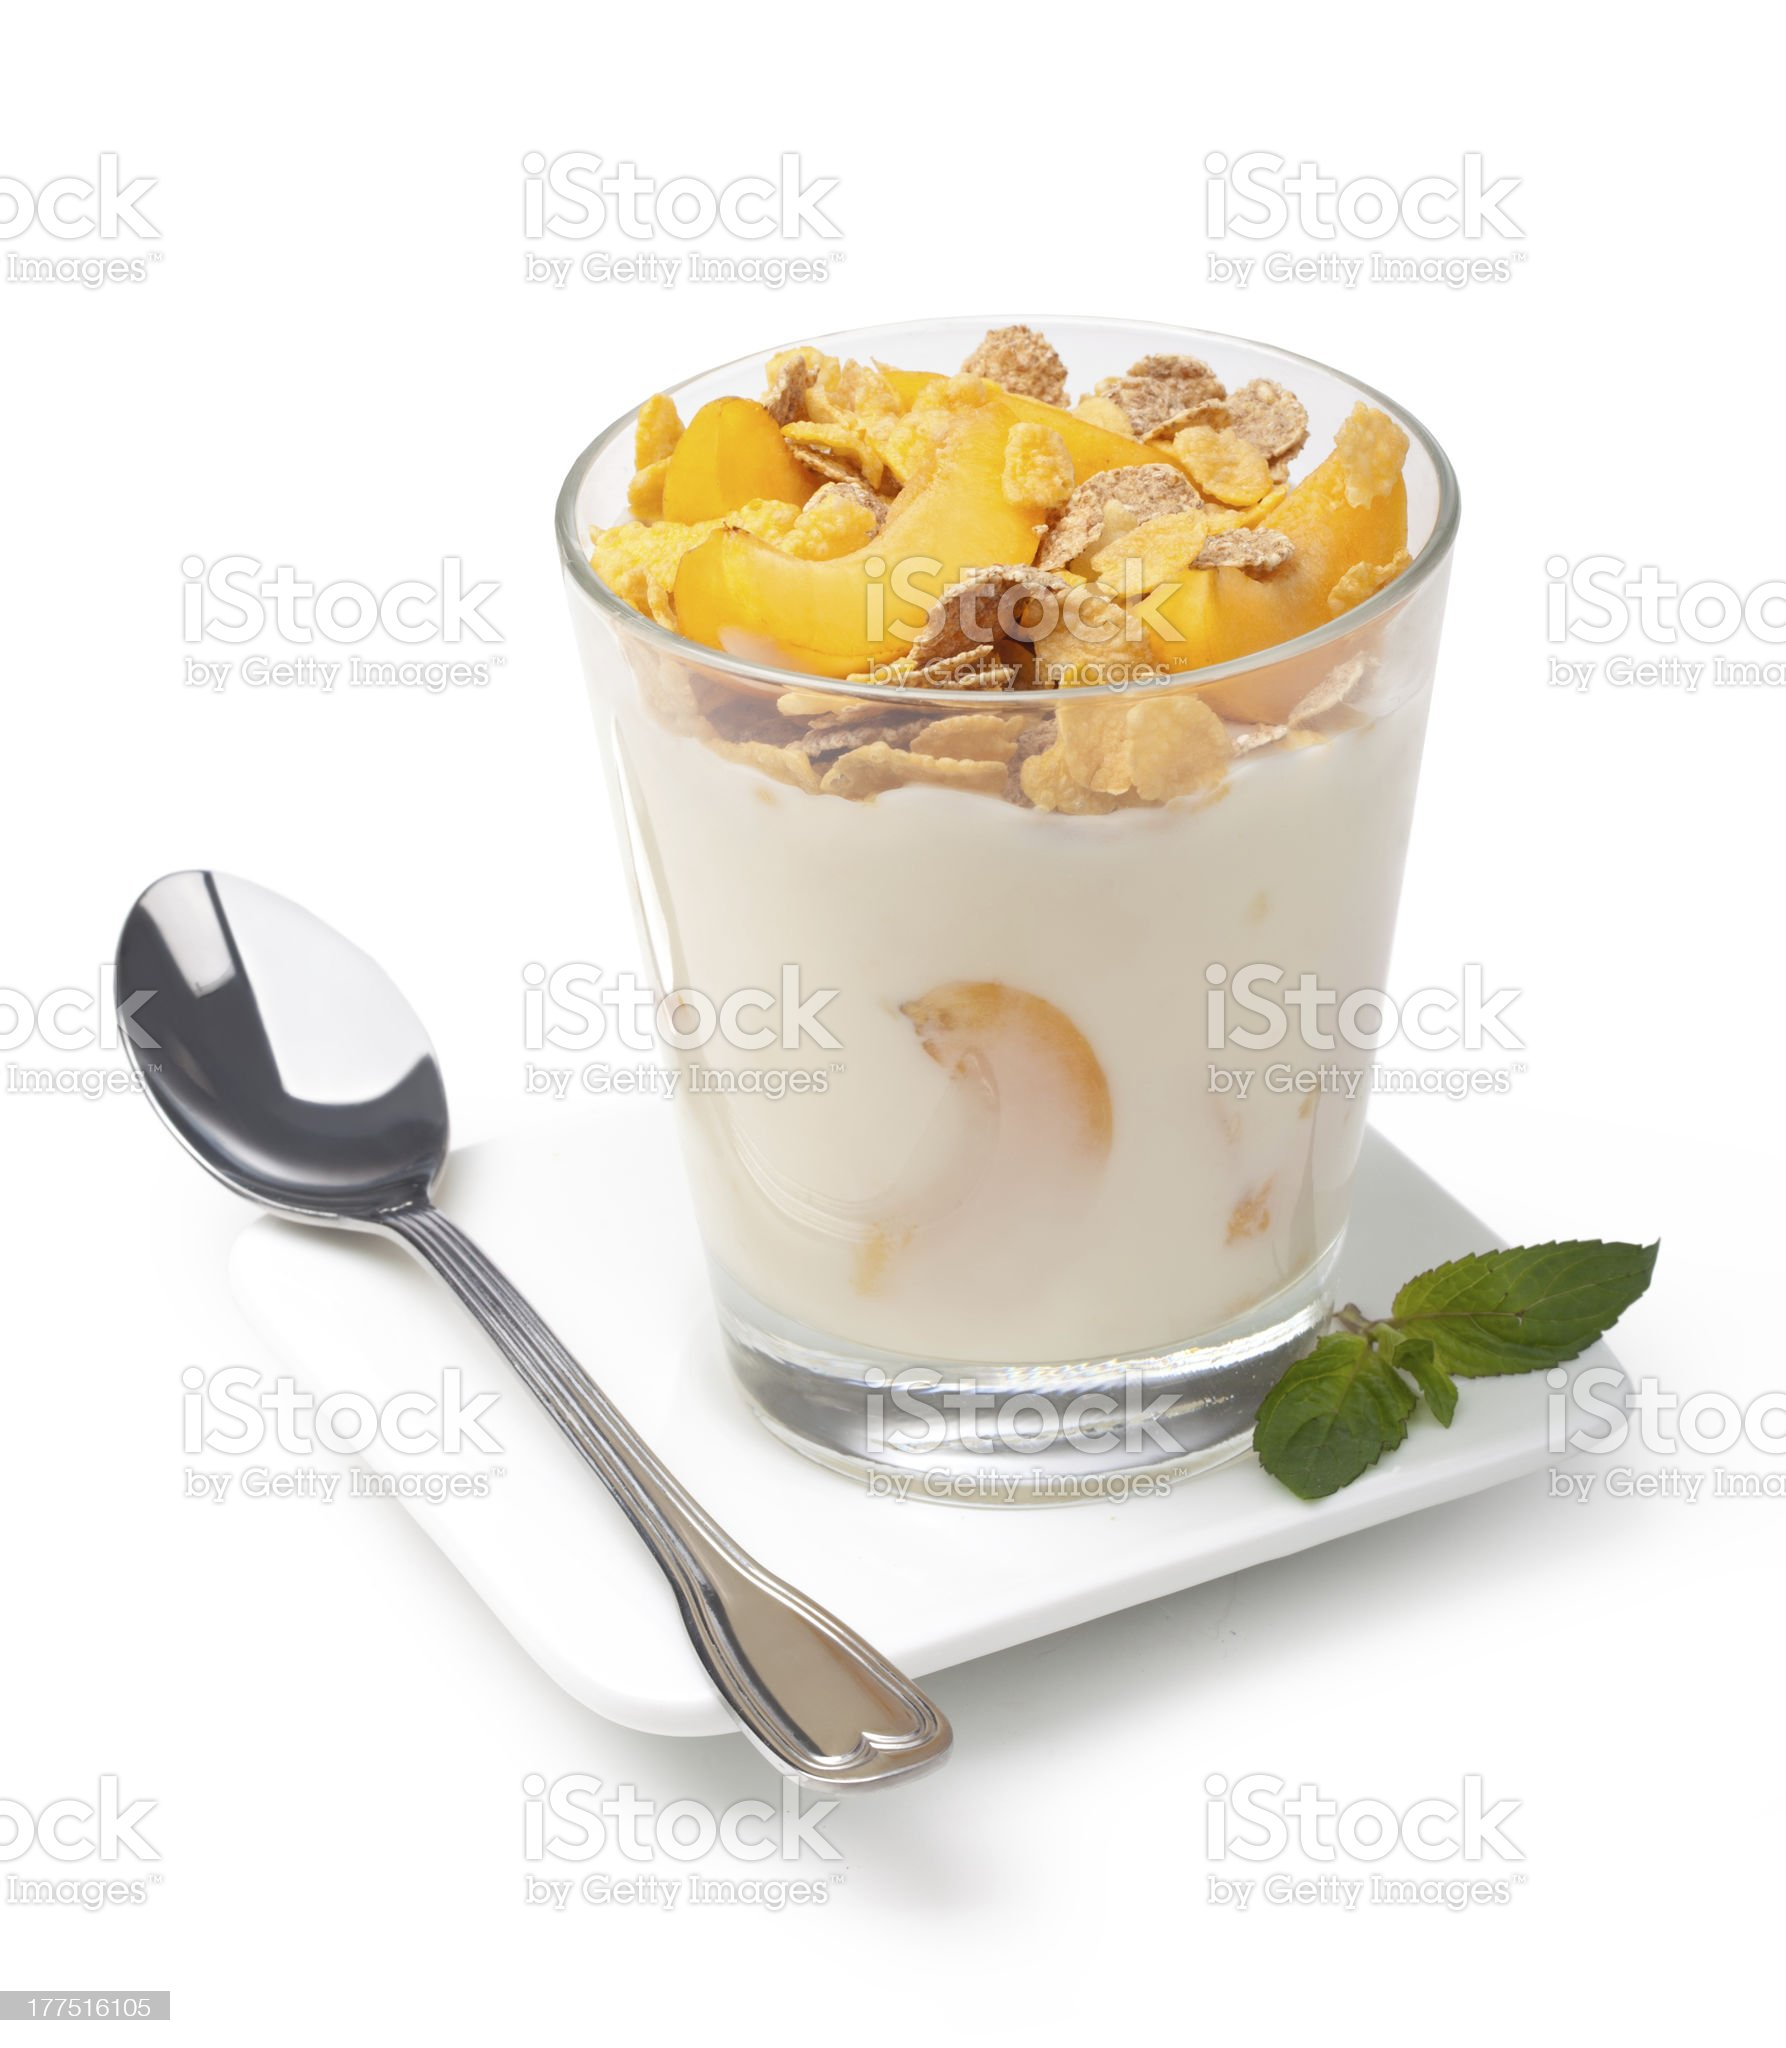 yogurt with muesli royalty-free stock photo